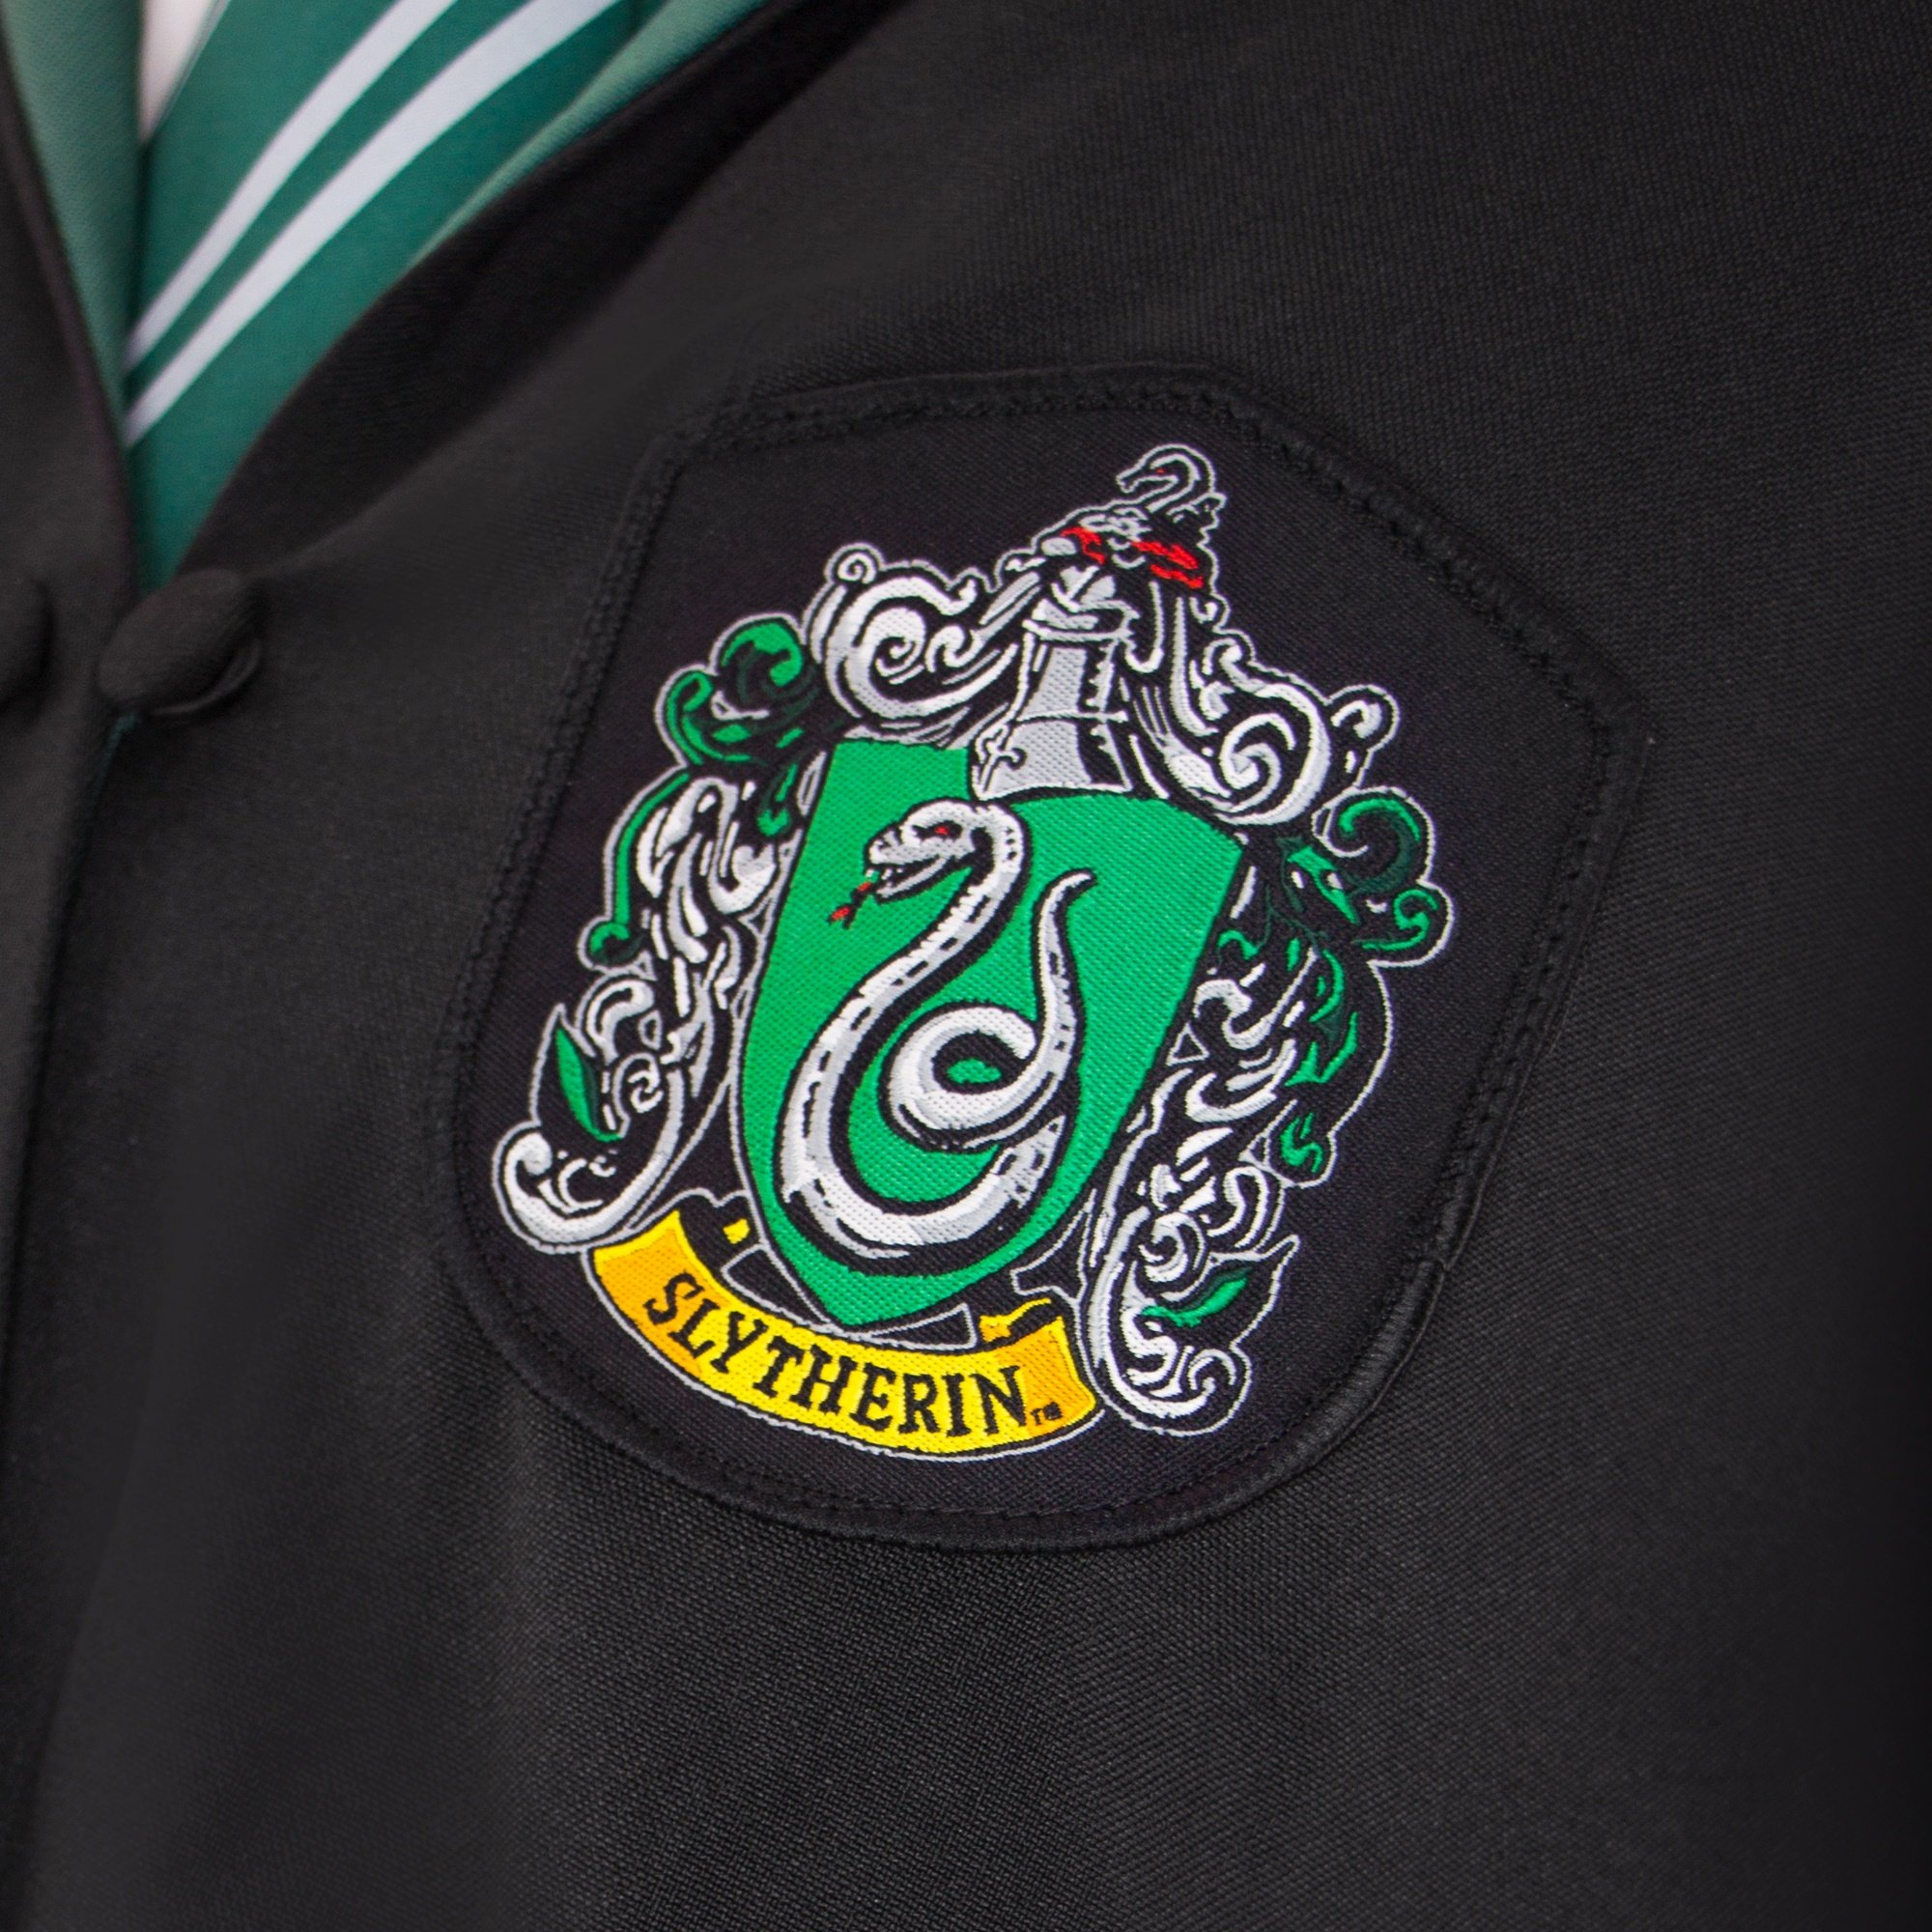 Harry Potter Authentic Tailored Wizard Robes Cloak by Cinereplicas by Cinereplicas (Image #2)